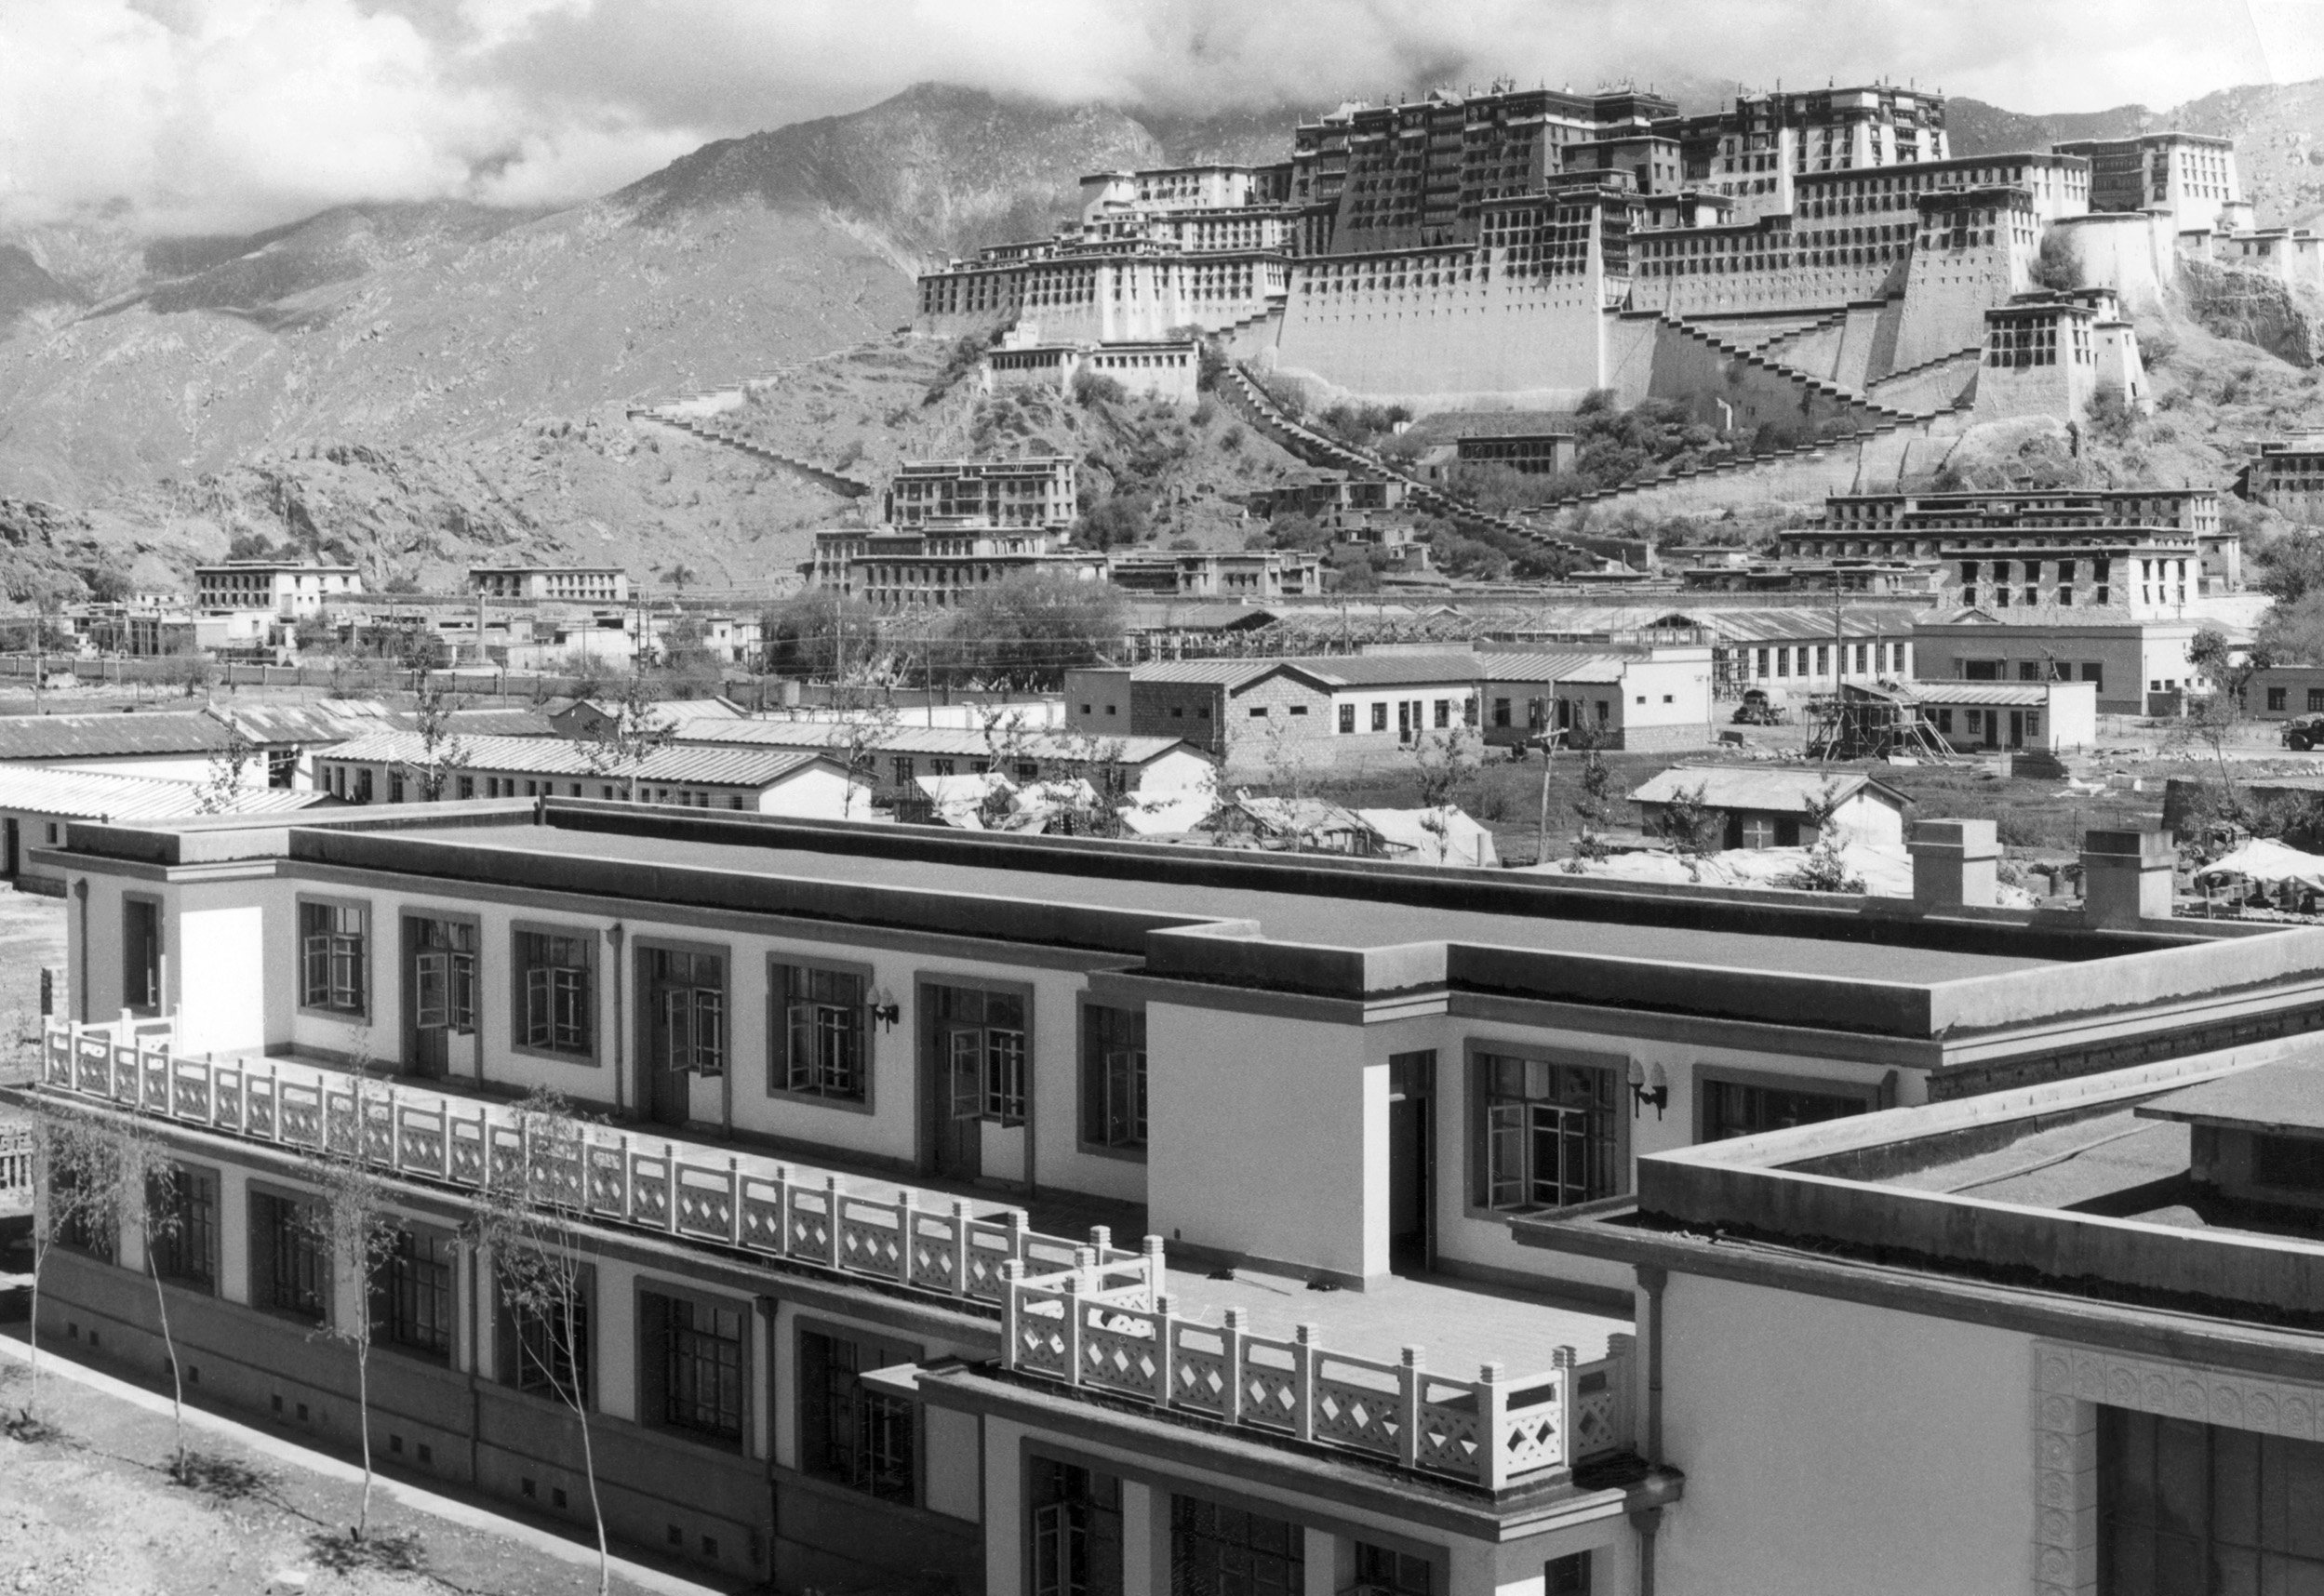 A picture released by Chinese official news agency in August 1965 with a caption saying: New buildings are going up at the foot of the Potala Palace (in the background, the former home of the Dalai Lama) in Lhasa